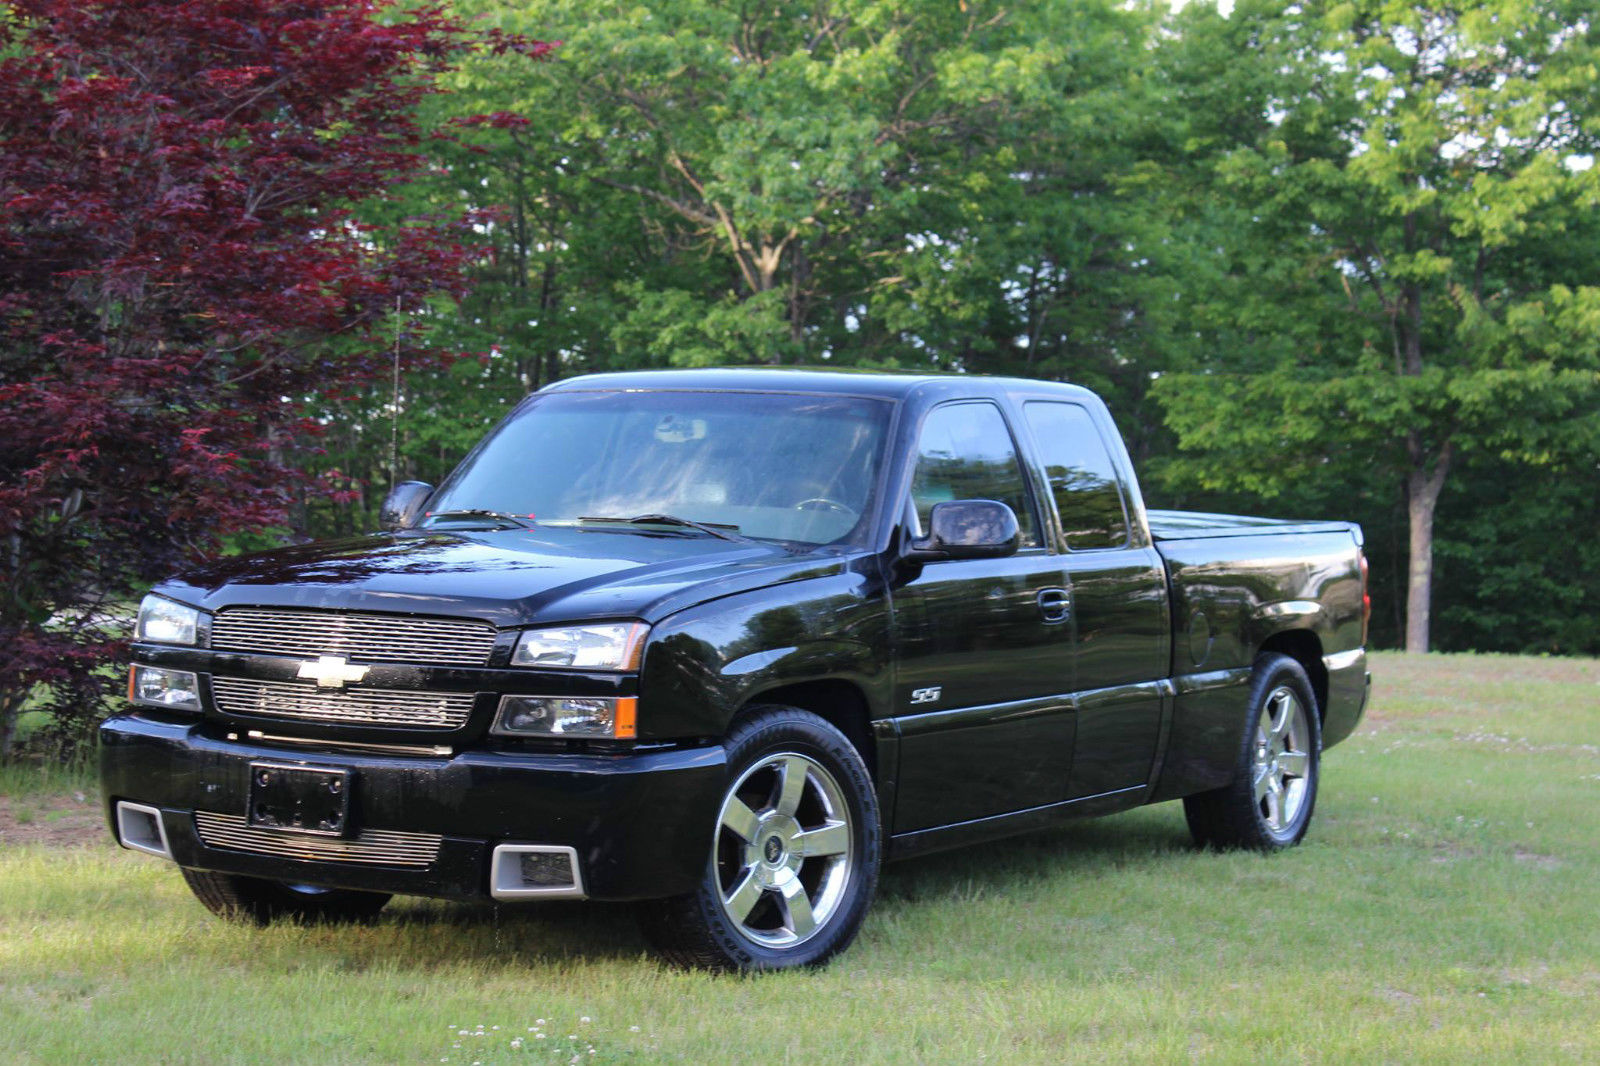 2004 chevrolet ss silverado 408 stroker turbo built lsx. Black Bedroom Furniture Sets. Home Design Ideas